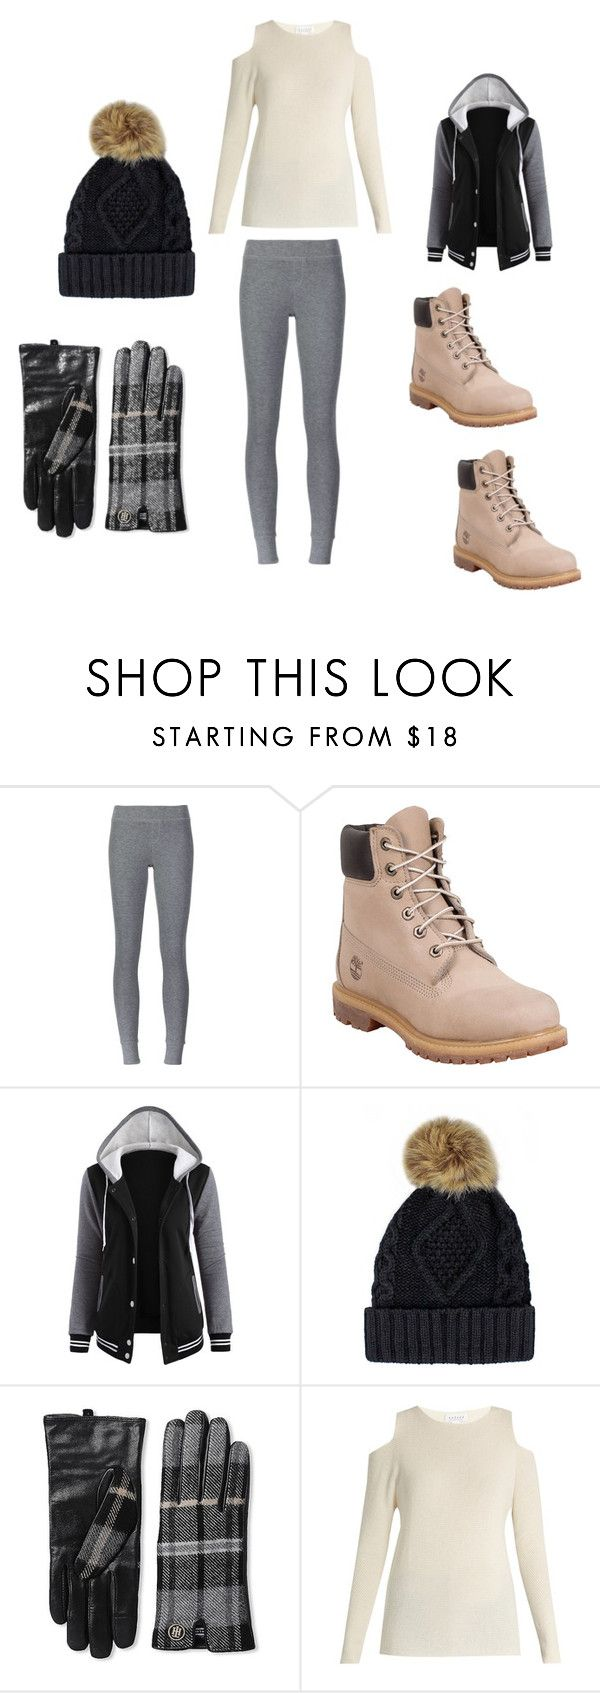 """""""Keeping warm during winter"""" by grace-dxvii on Polyvore featuring ATM by Anthony Thomas Melillo, Timberland, Tommy Hilfiger and Velvet by Graham & Spencer"""